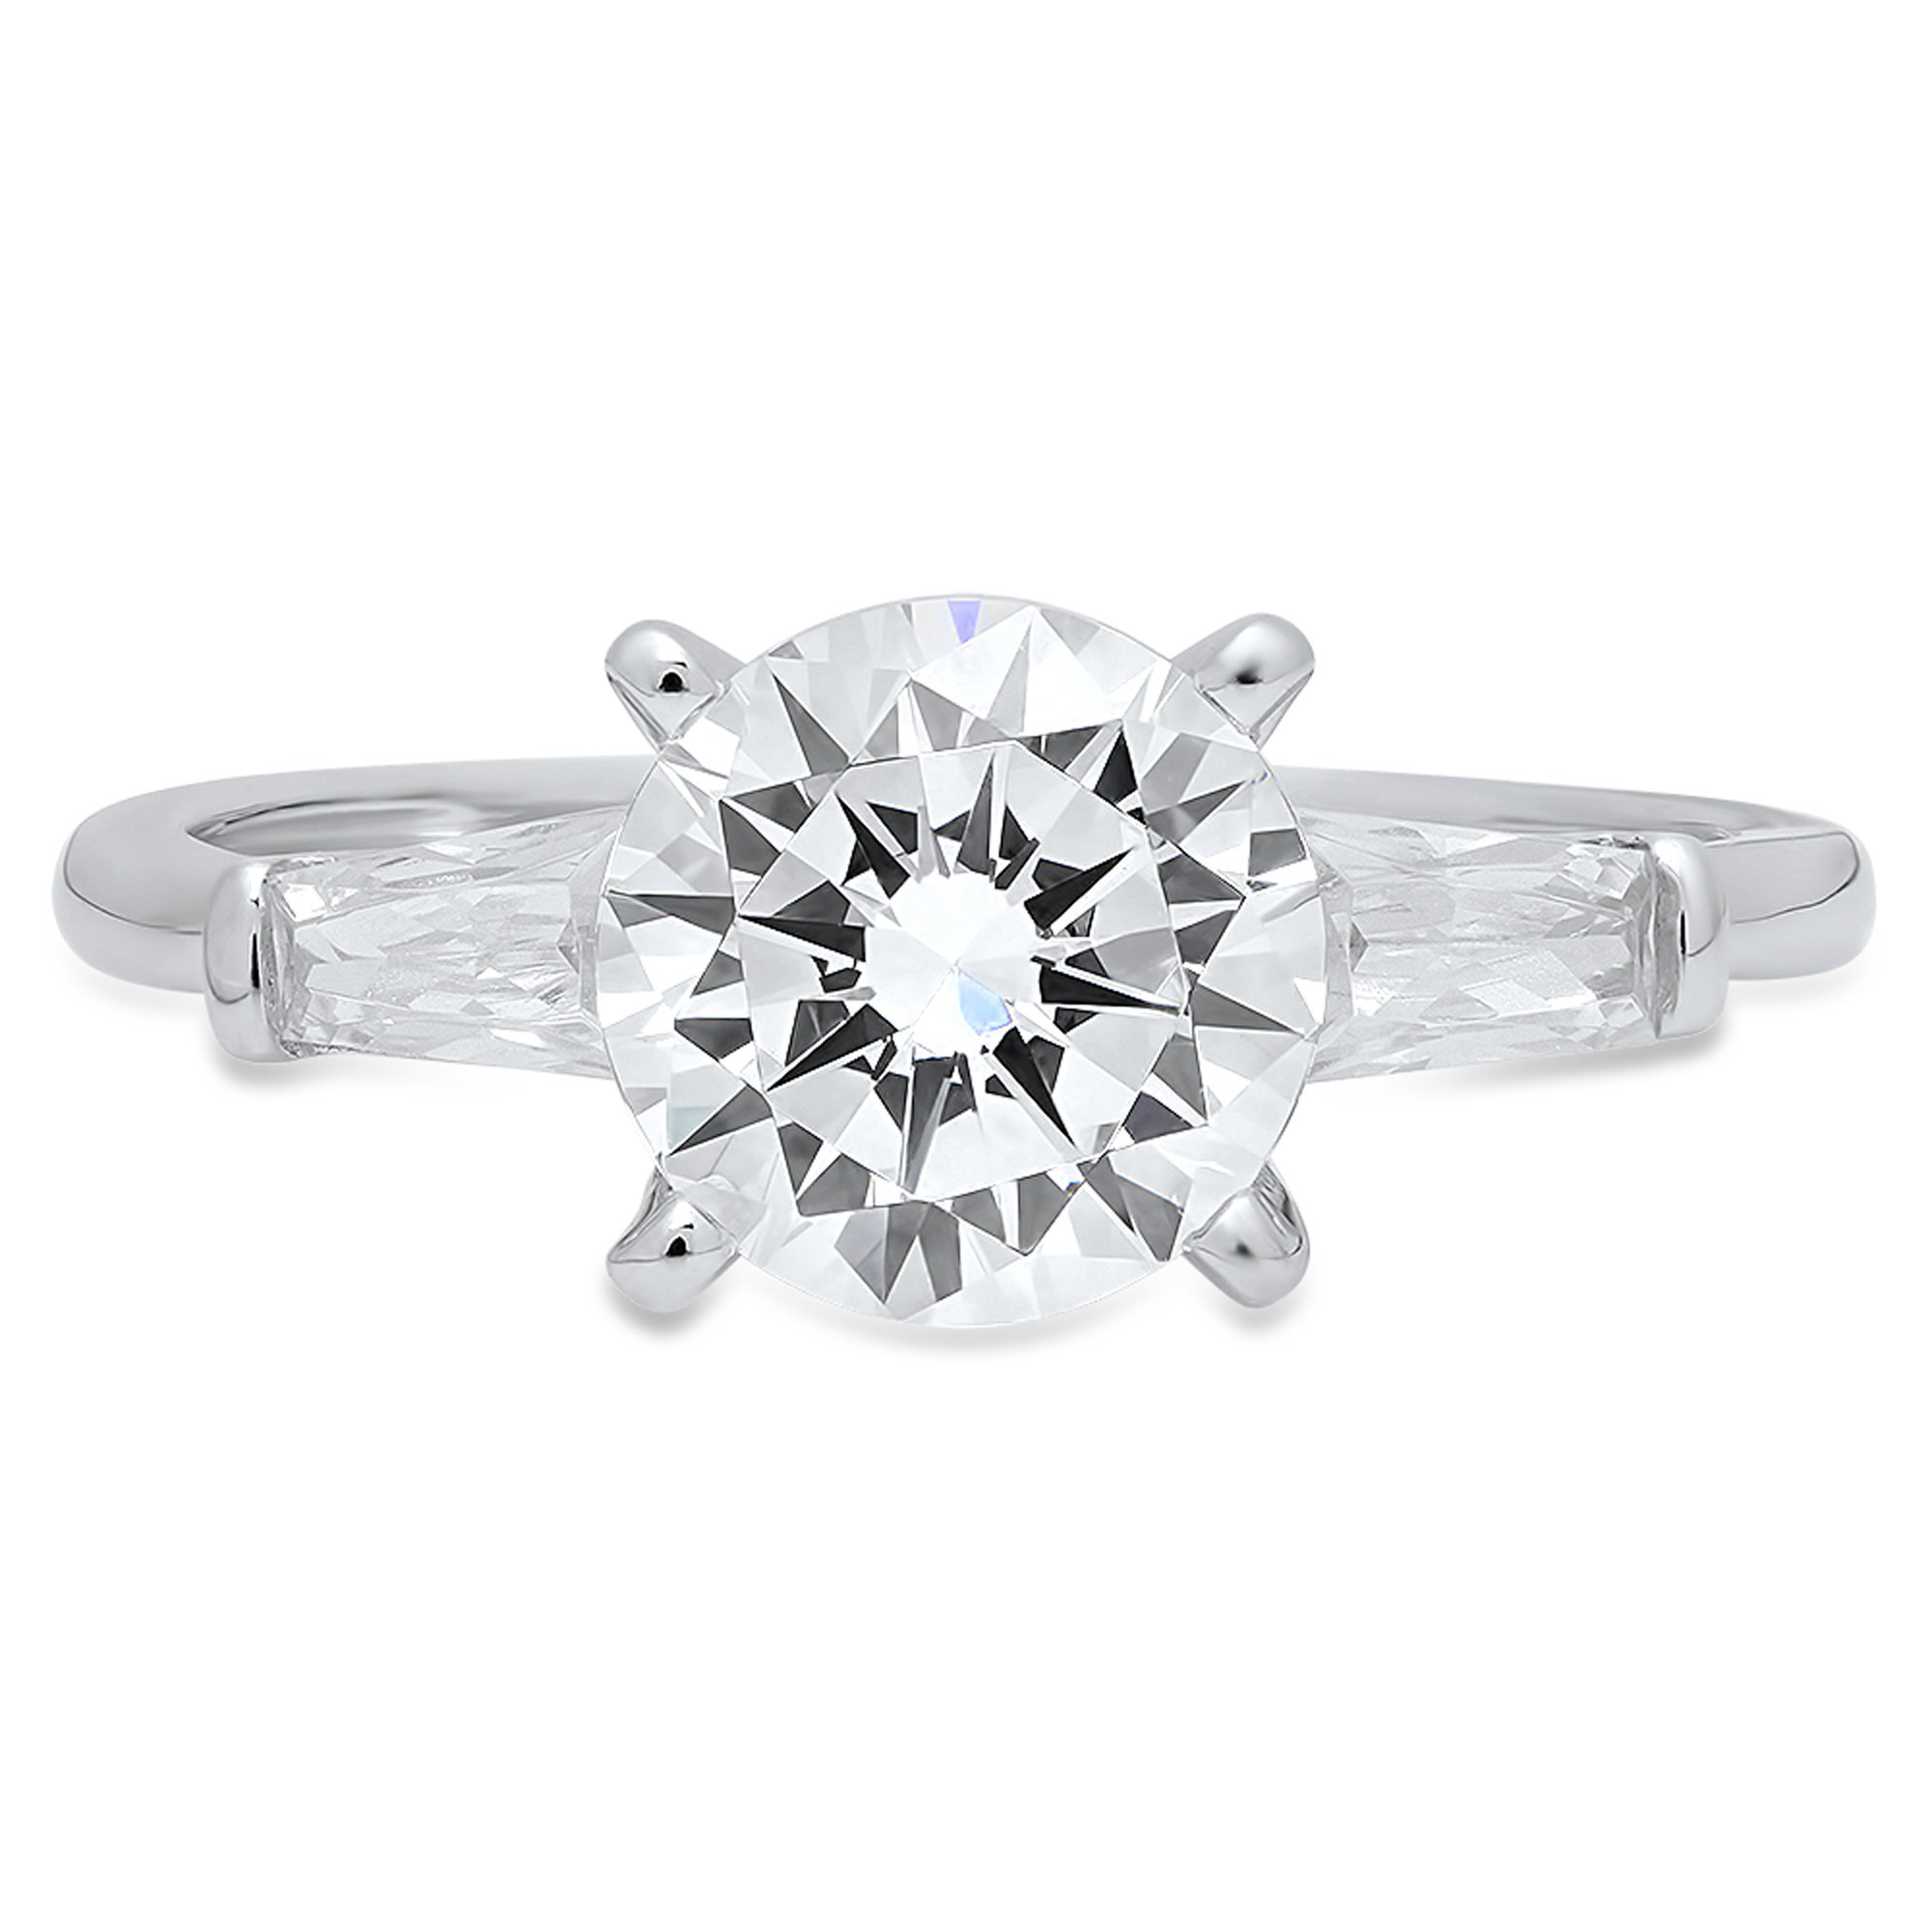 2.0 CT Brilliant Round & Baguette Cut Simulated Diamond CZ Designer Solitaire 3-Stone Wedding Anniversary Promise Band Ring Solid 14K White Gold by Clara Pucci